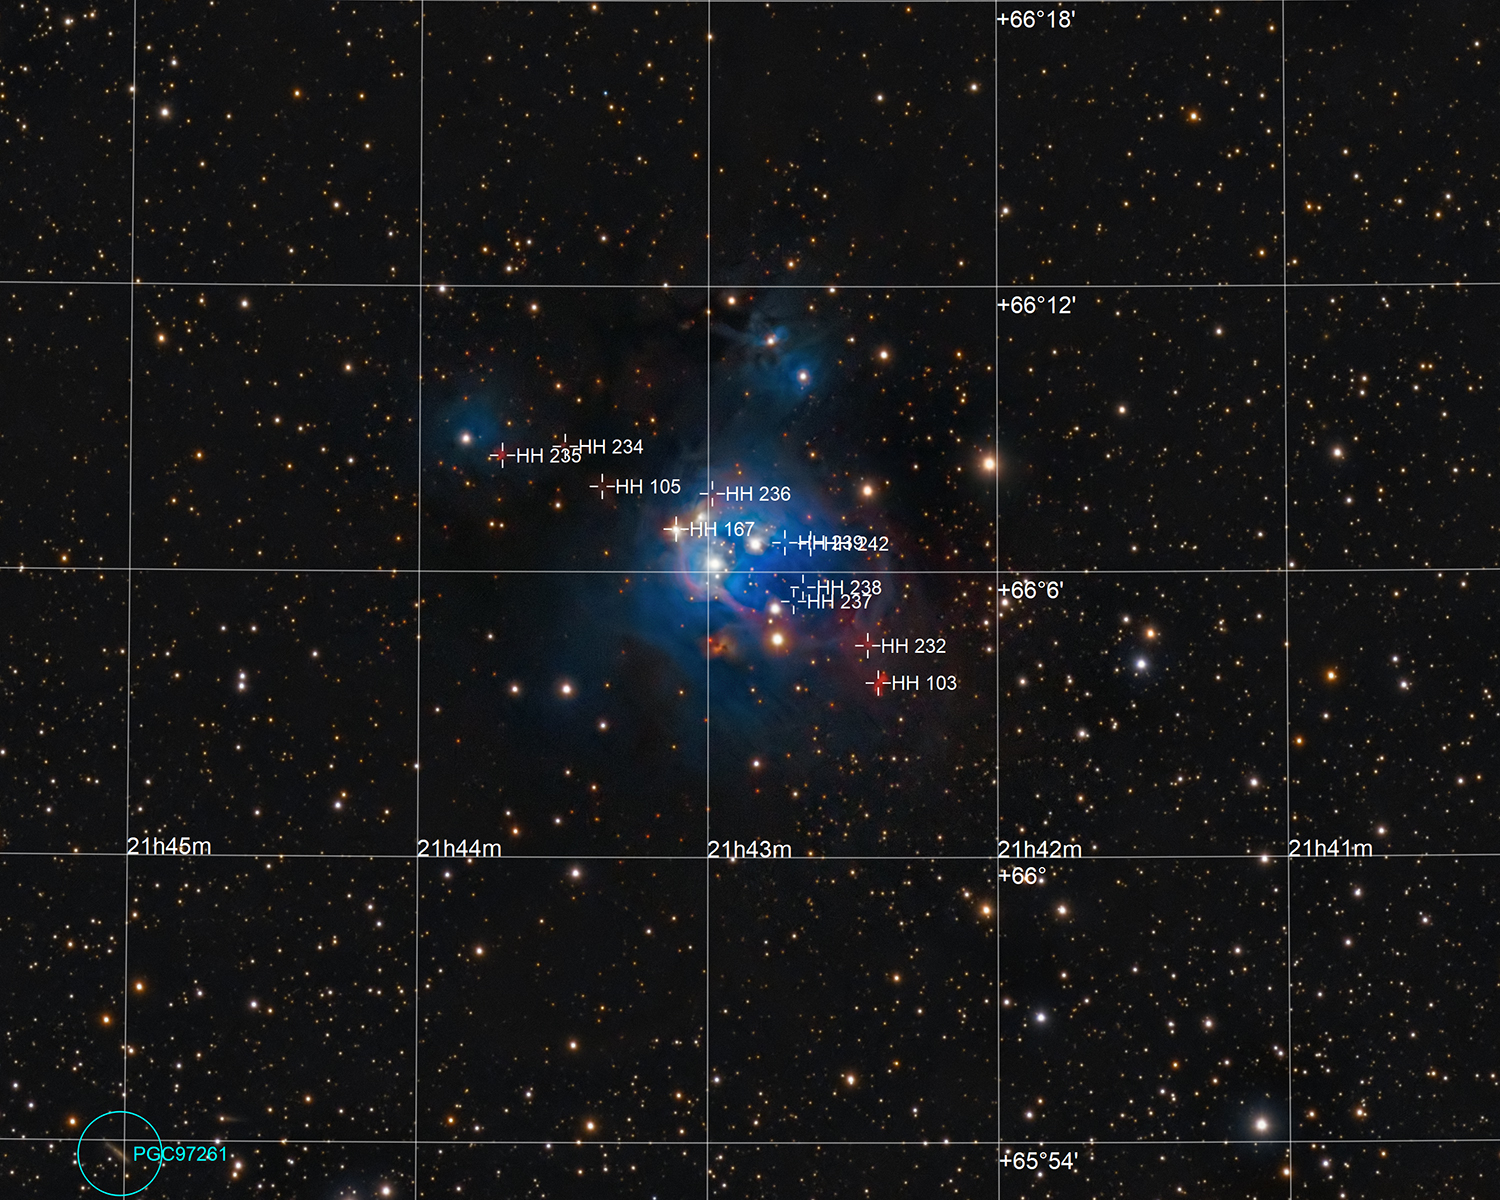 Star formation (annotated)